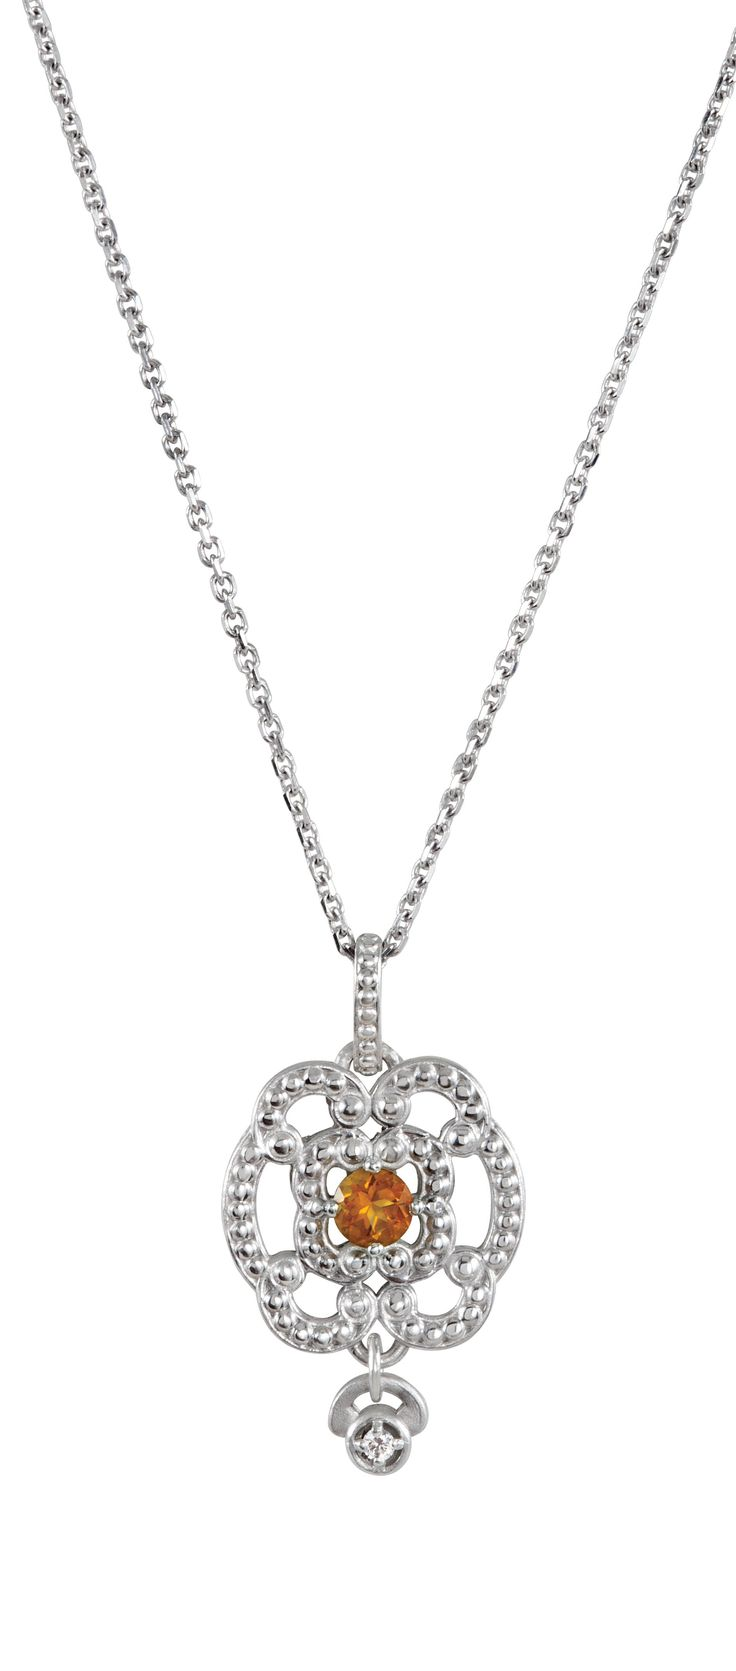 Celebrate November Birthdays with this Granulated Citrine Pendant! Click through for product details OR to locate a jeweler near you. #HBDNovember #HowIStuller